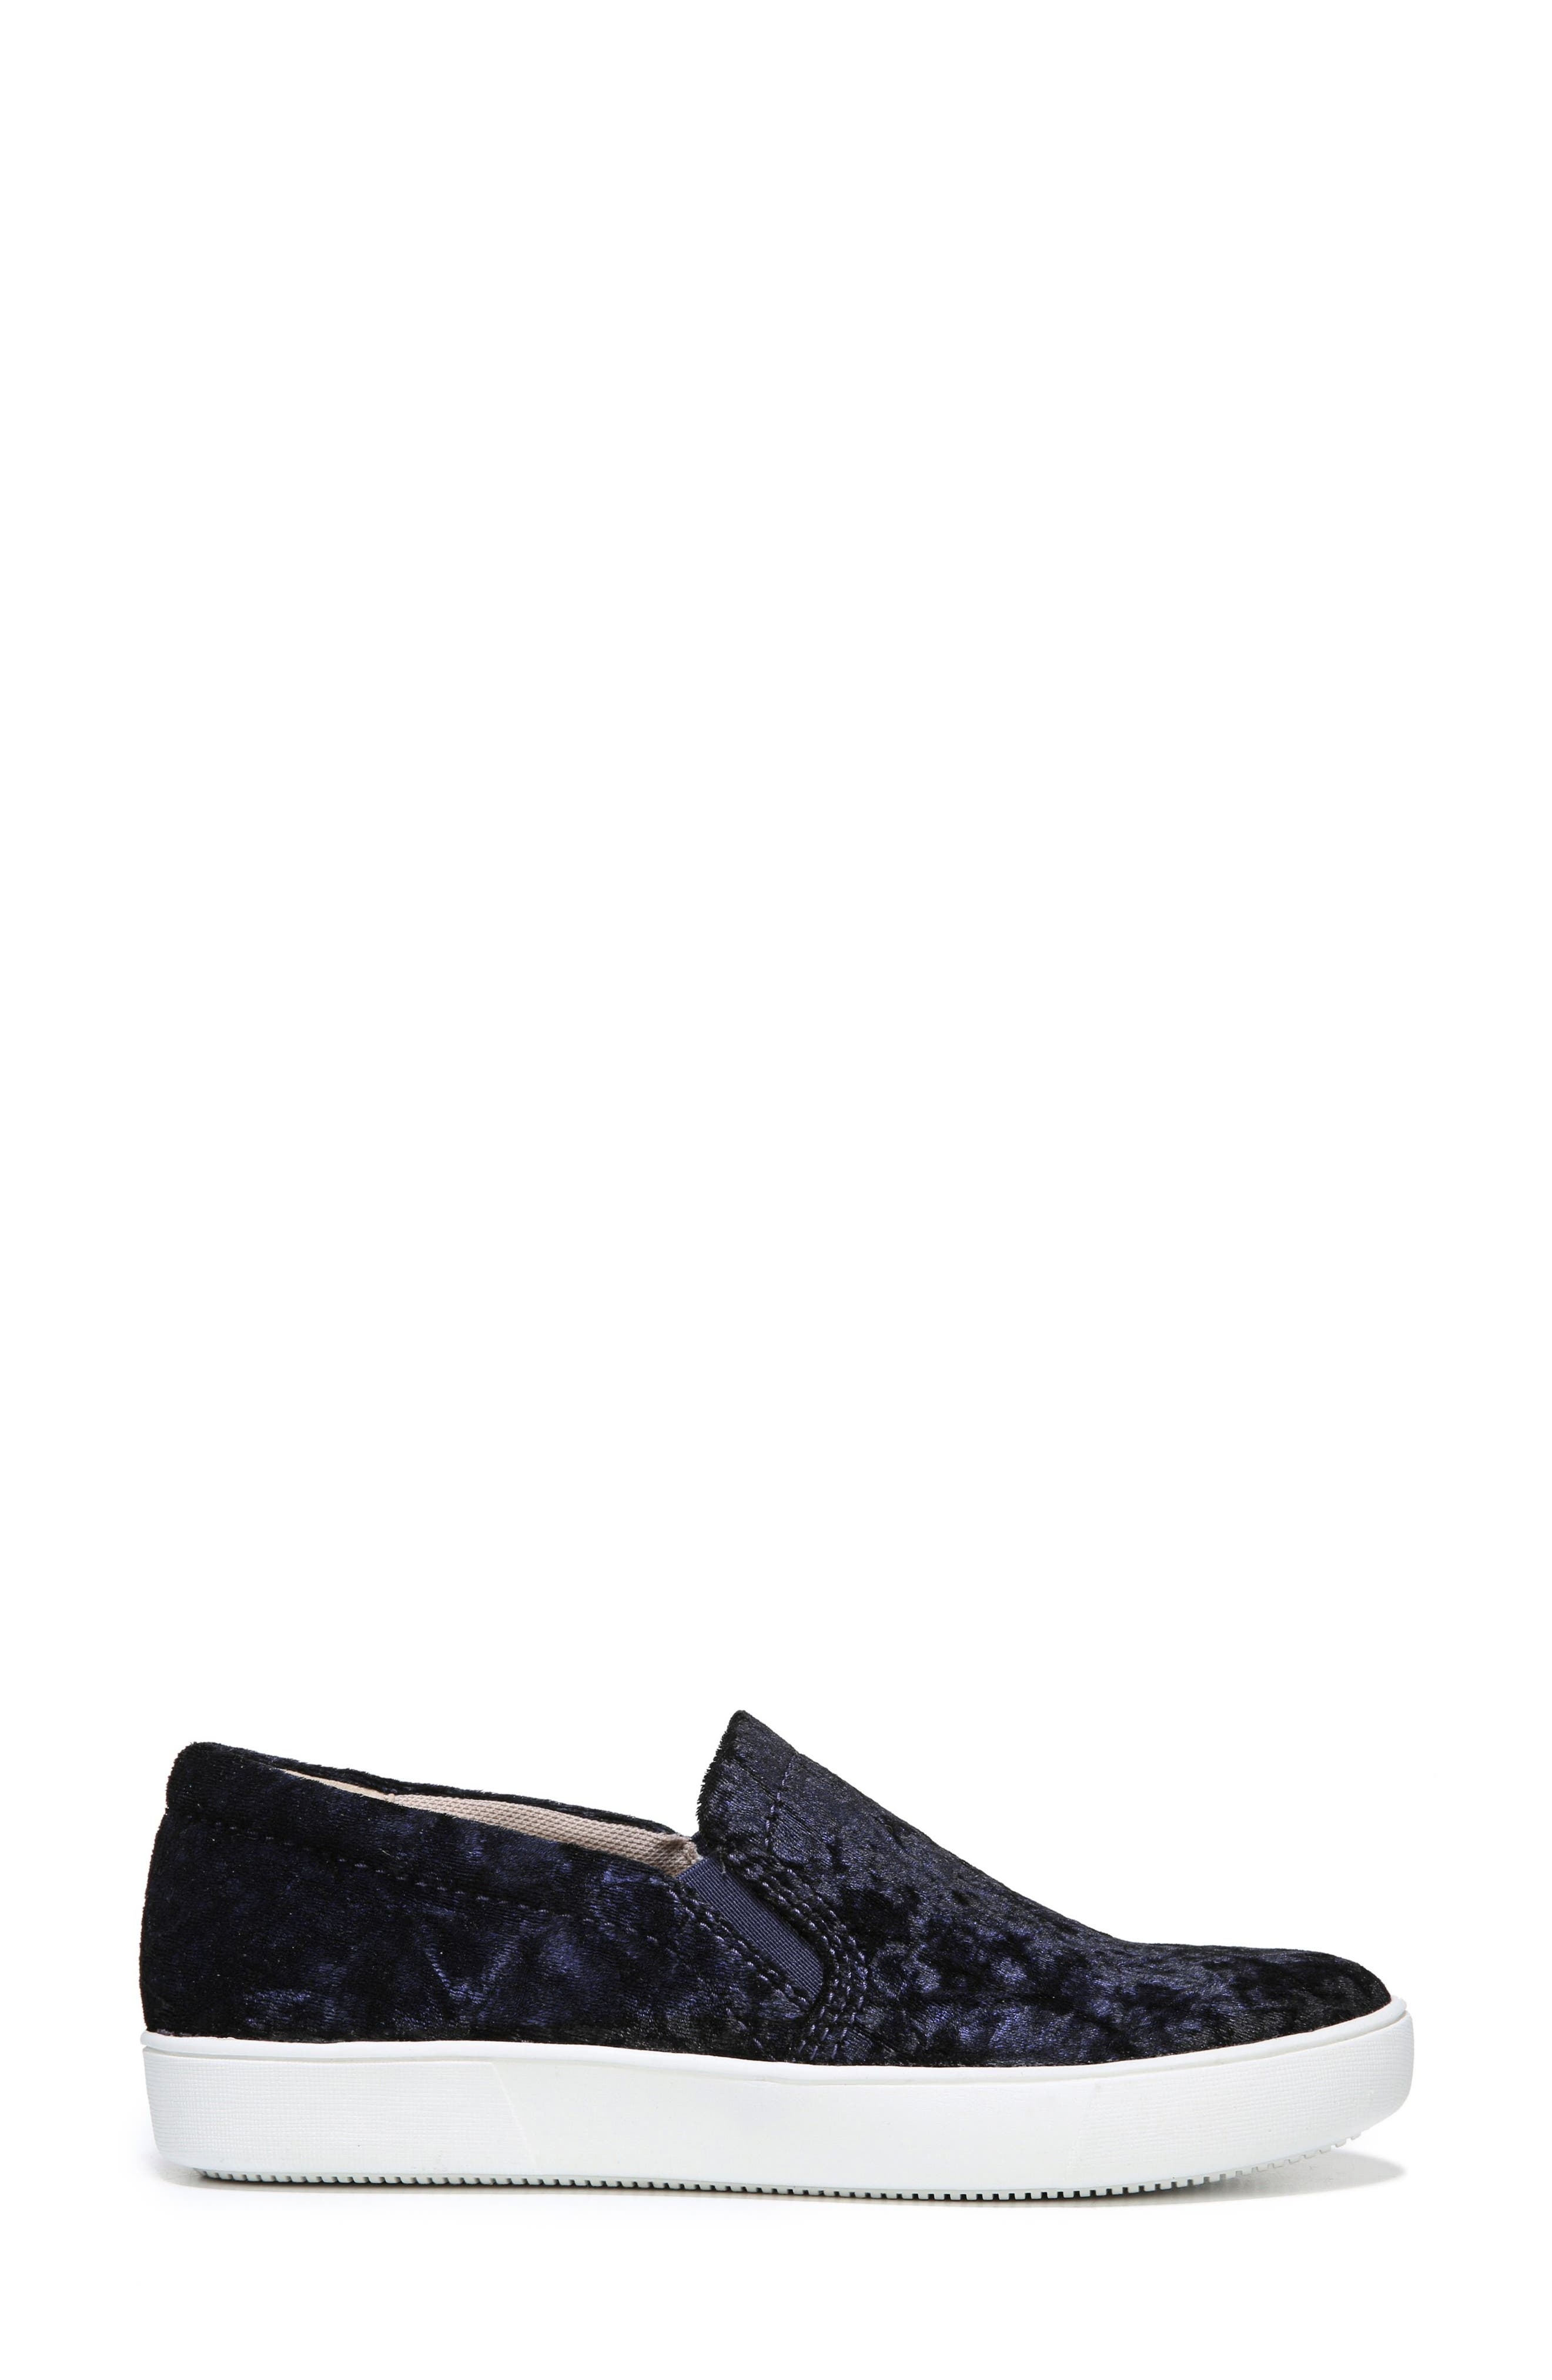 NATURALIZER, Marianne Slip-On Sneaker, Alternate thumbnail 3, color, NAVY VELVET